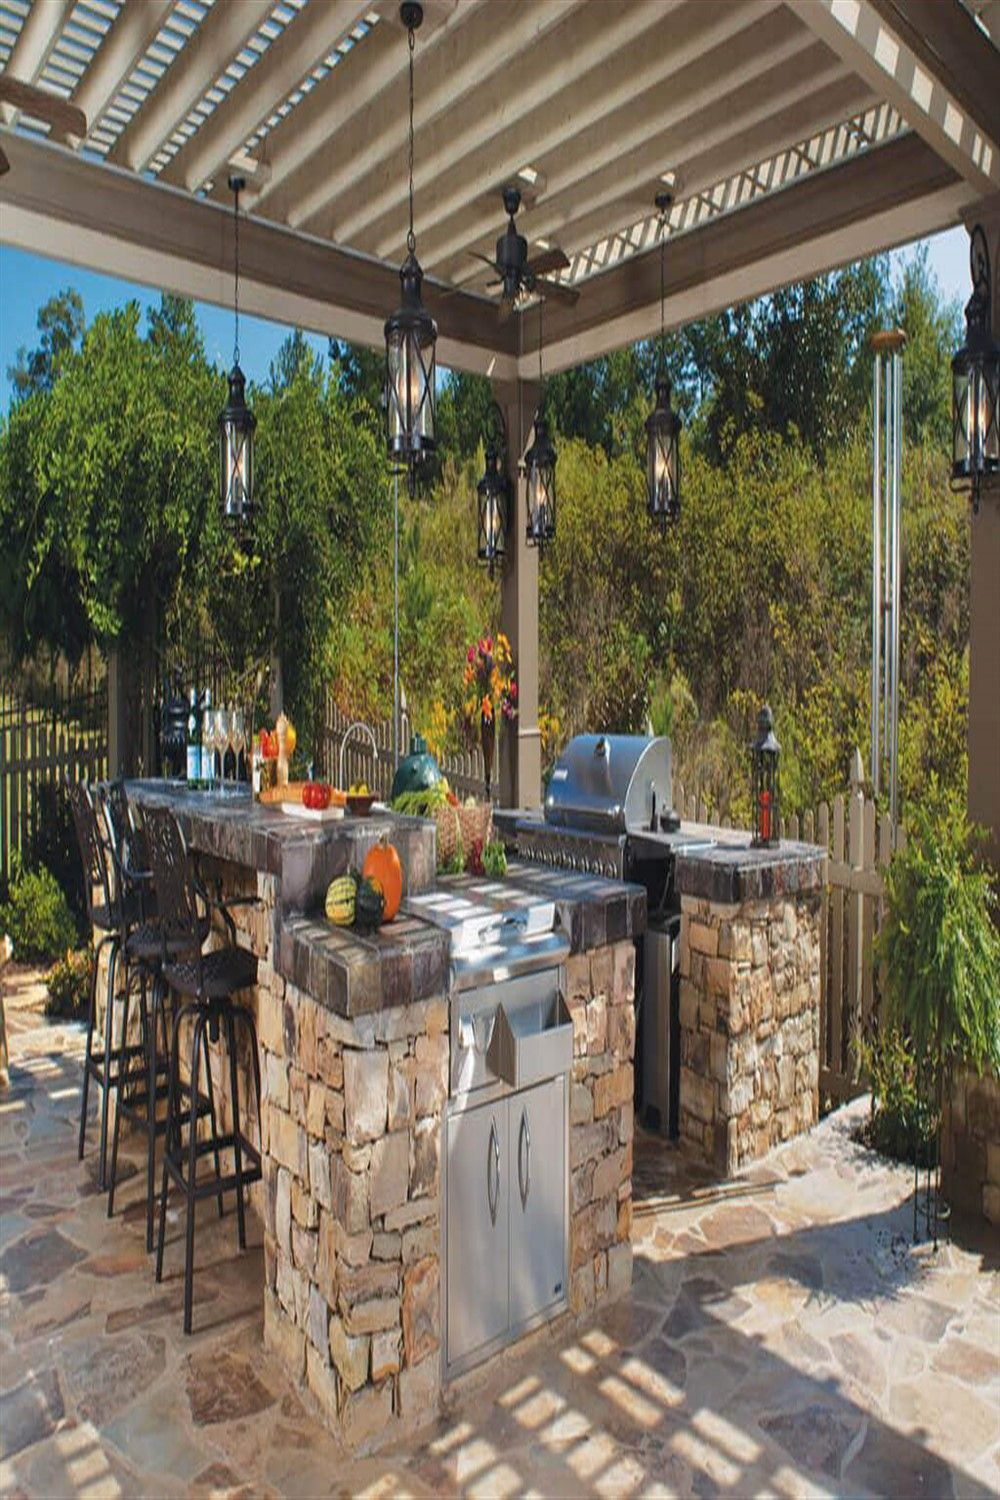 An Outdoor Kitchen Is The Ultimate Dream For A Lot Of People Who Enjoy Backyard Entertaining Imag In 2020 Outdoor Kitchen Design Outdoor Kitchen Outdoor Kitchen Patio